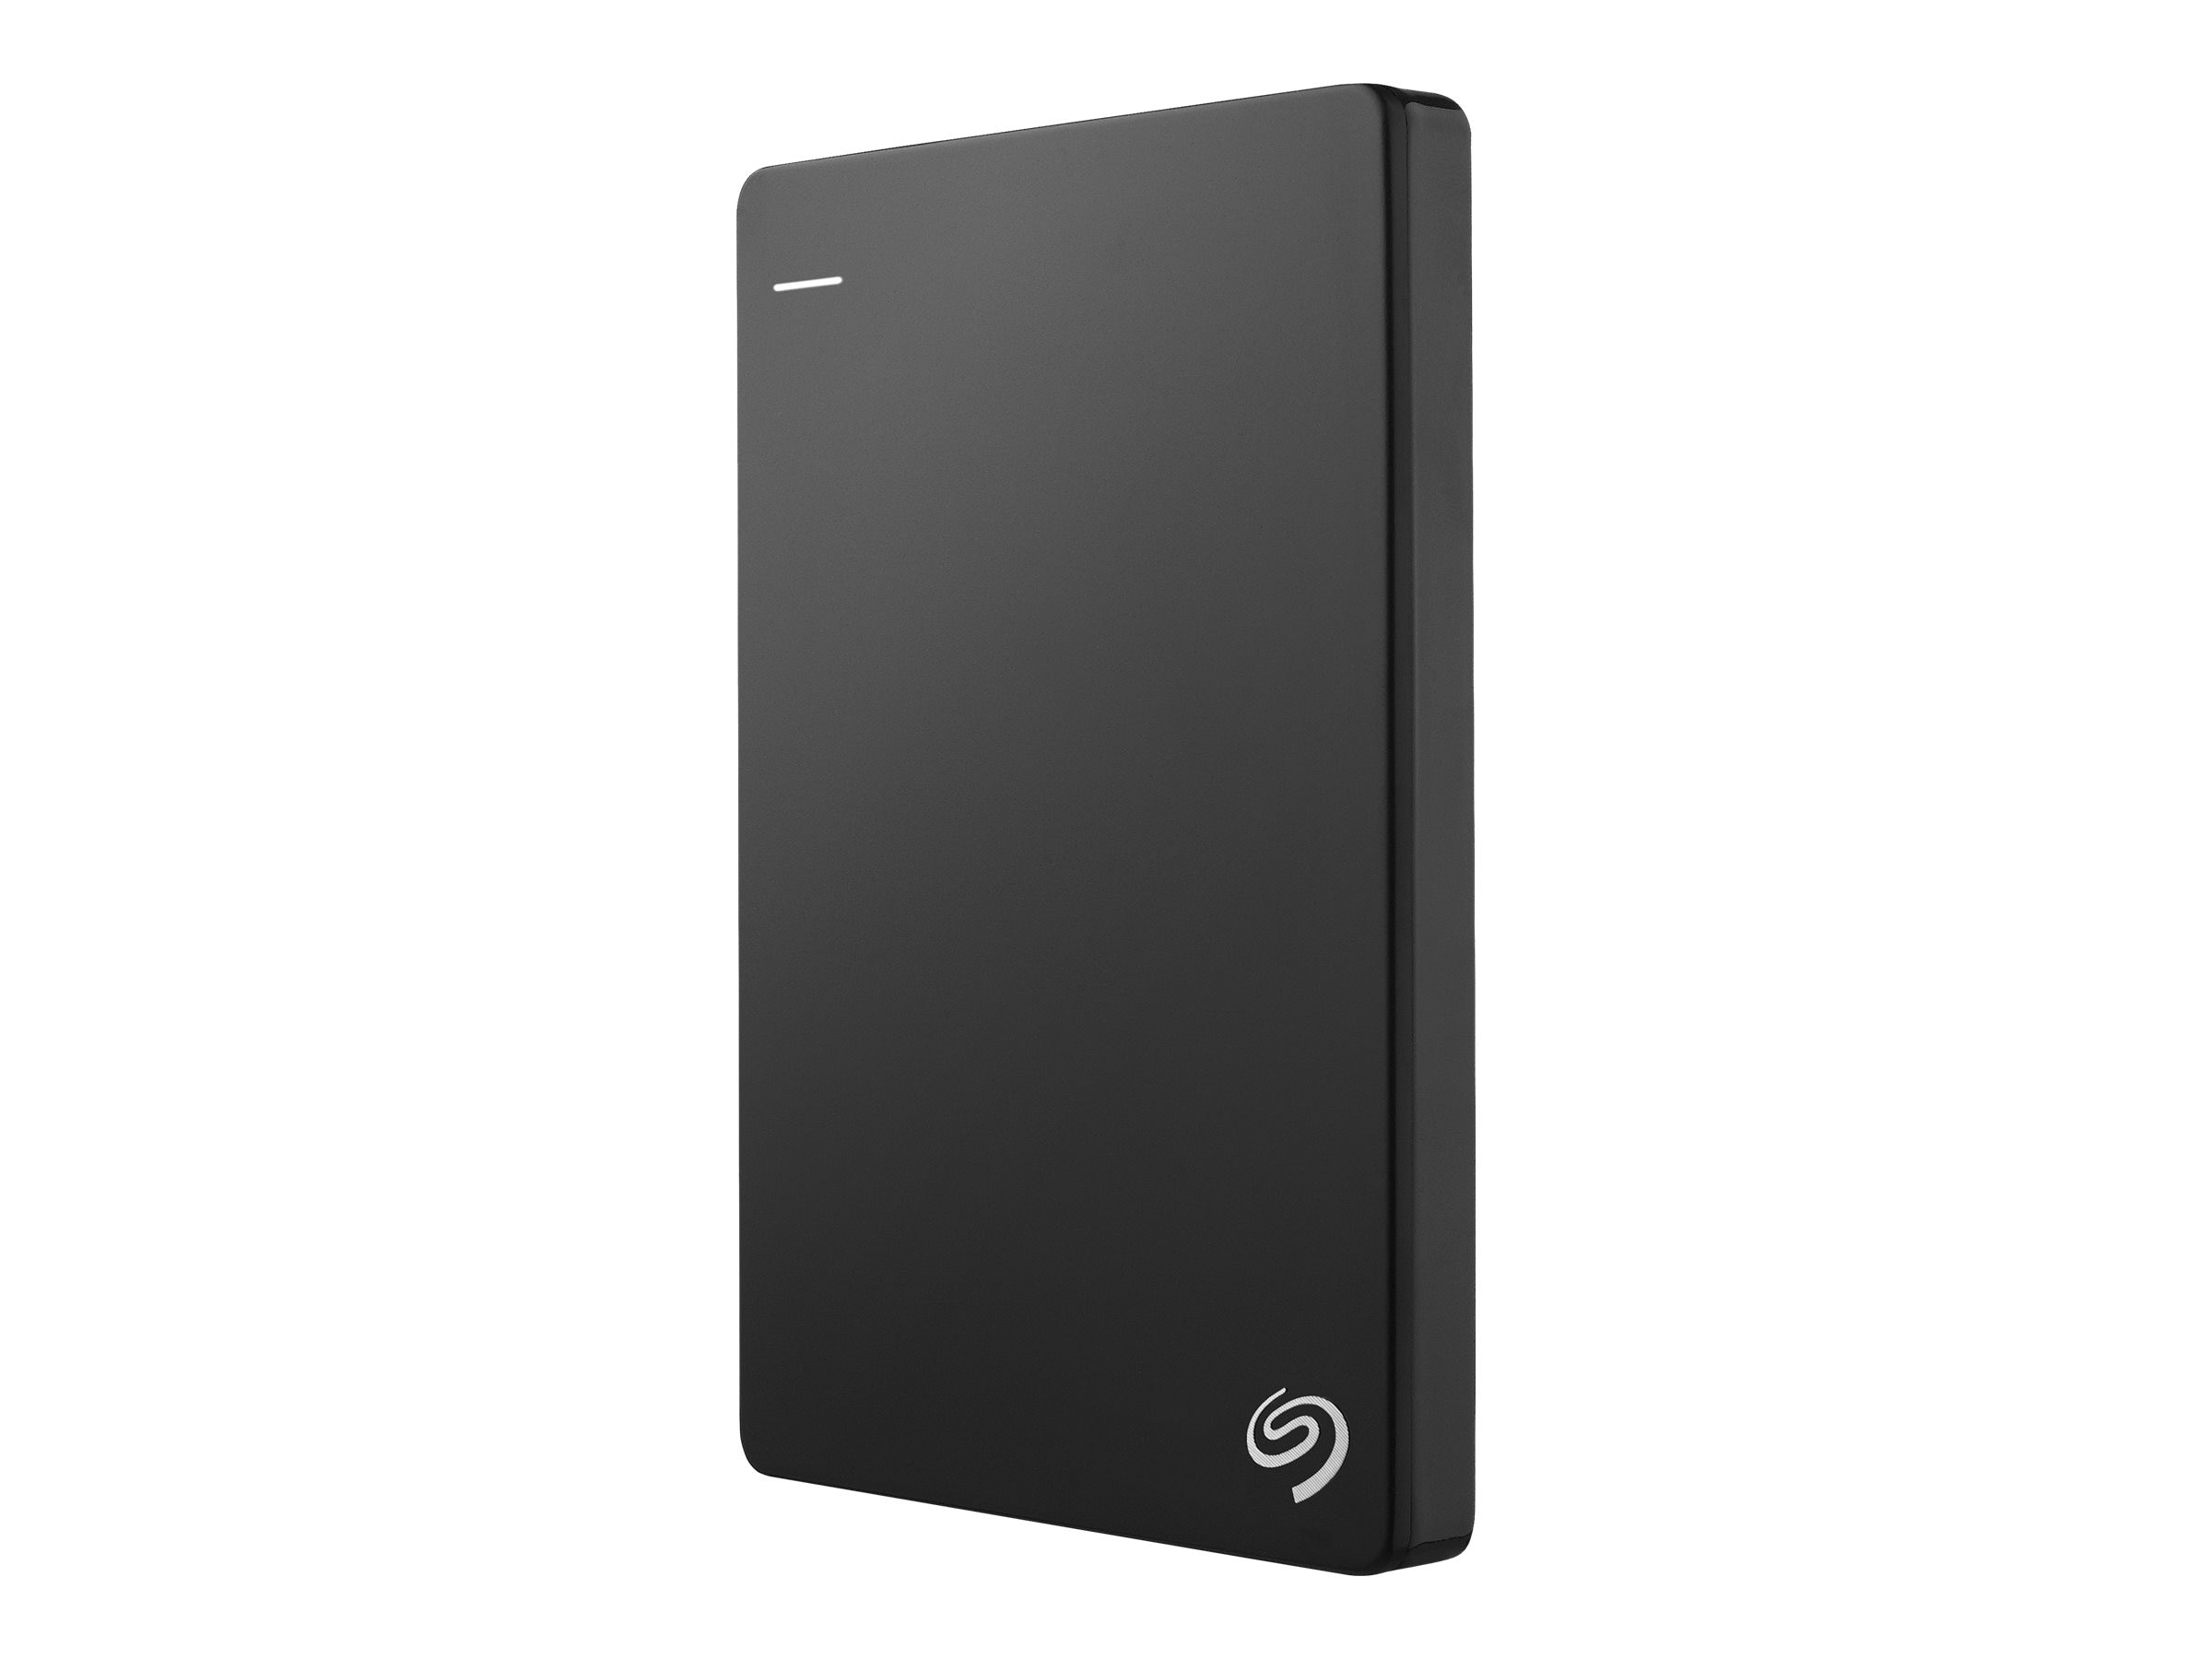 Seagate 2TB Backup Plus USB 3.0 Portable Hard Drive - Black, STDR2000100, 16479466, Hard Drives - External